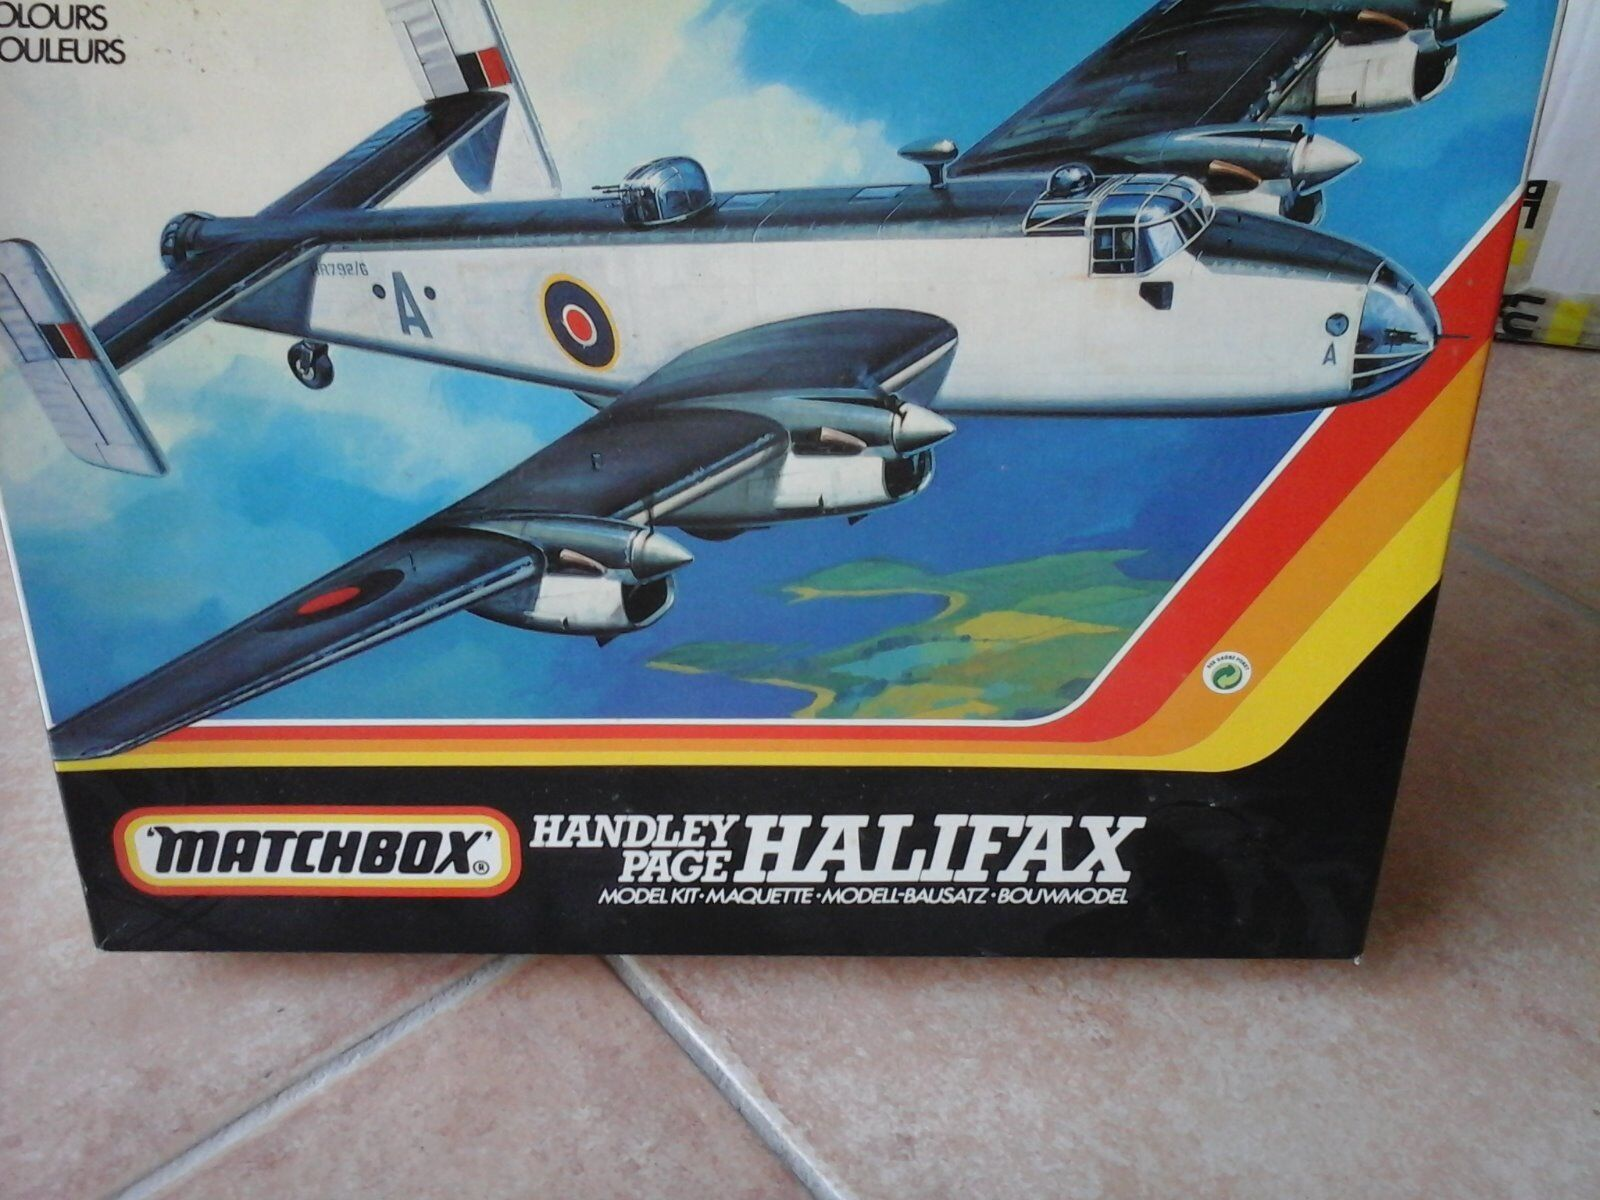 HANDLEY PAGE HALIFAX 1 72 SCALE MATCHBOX MODEL